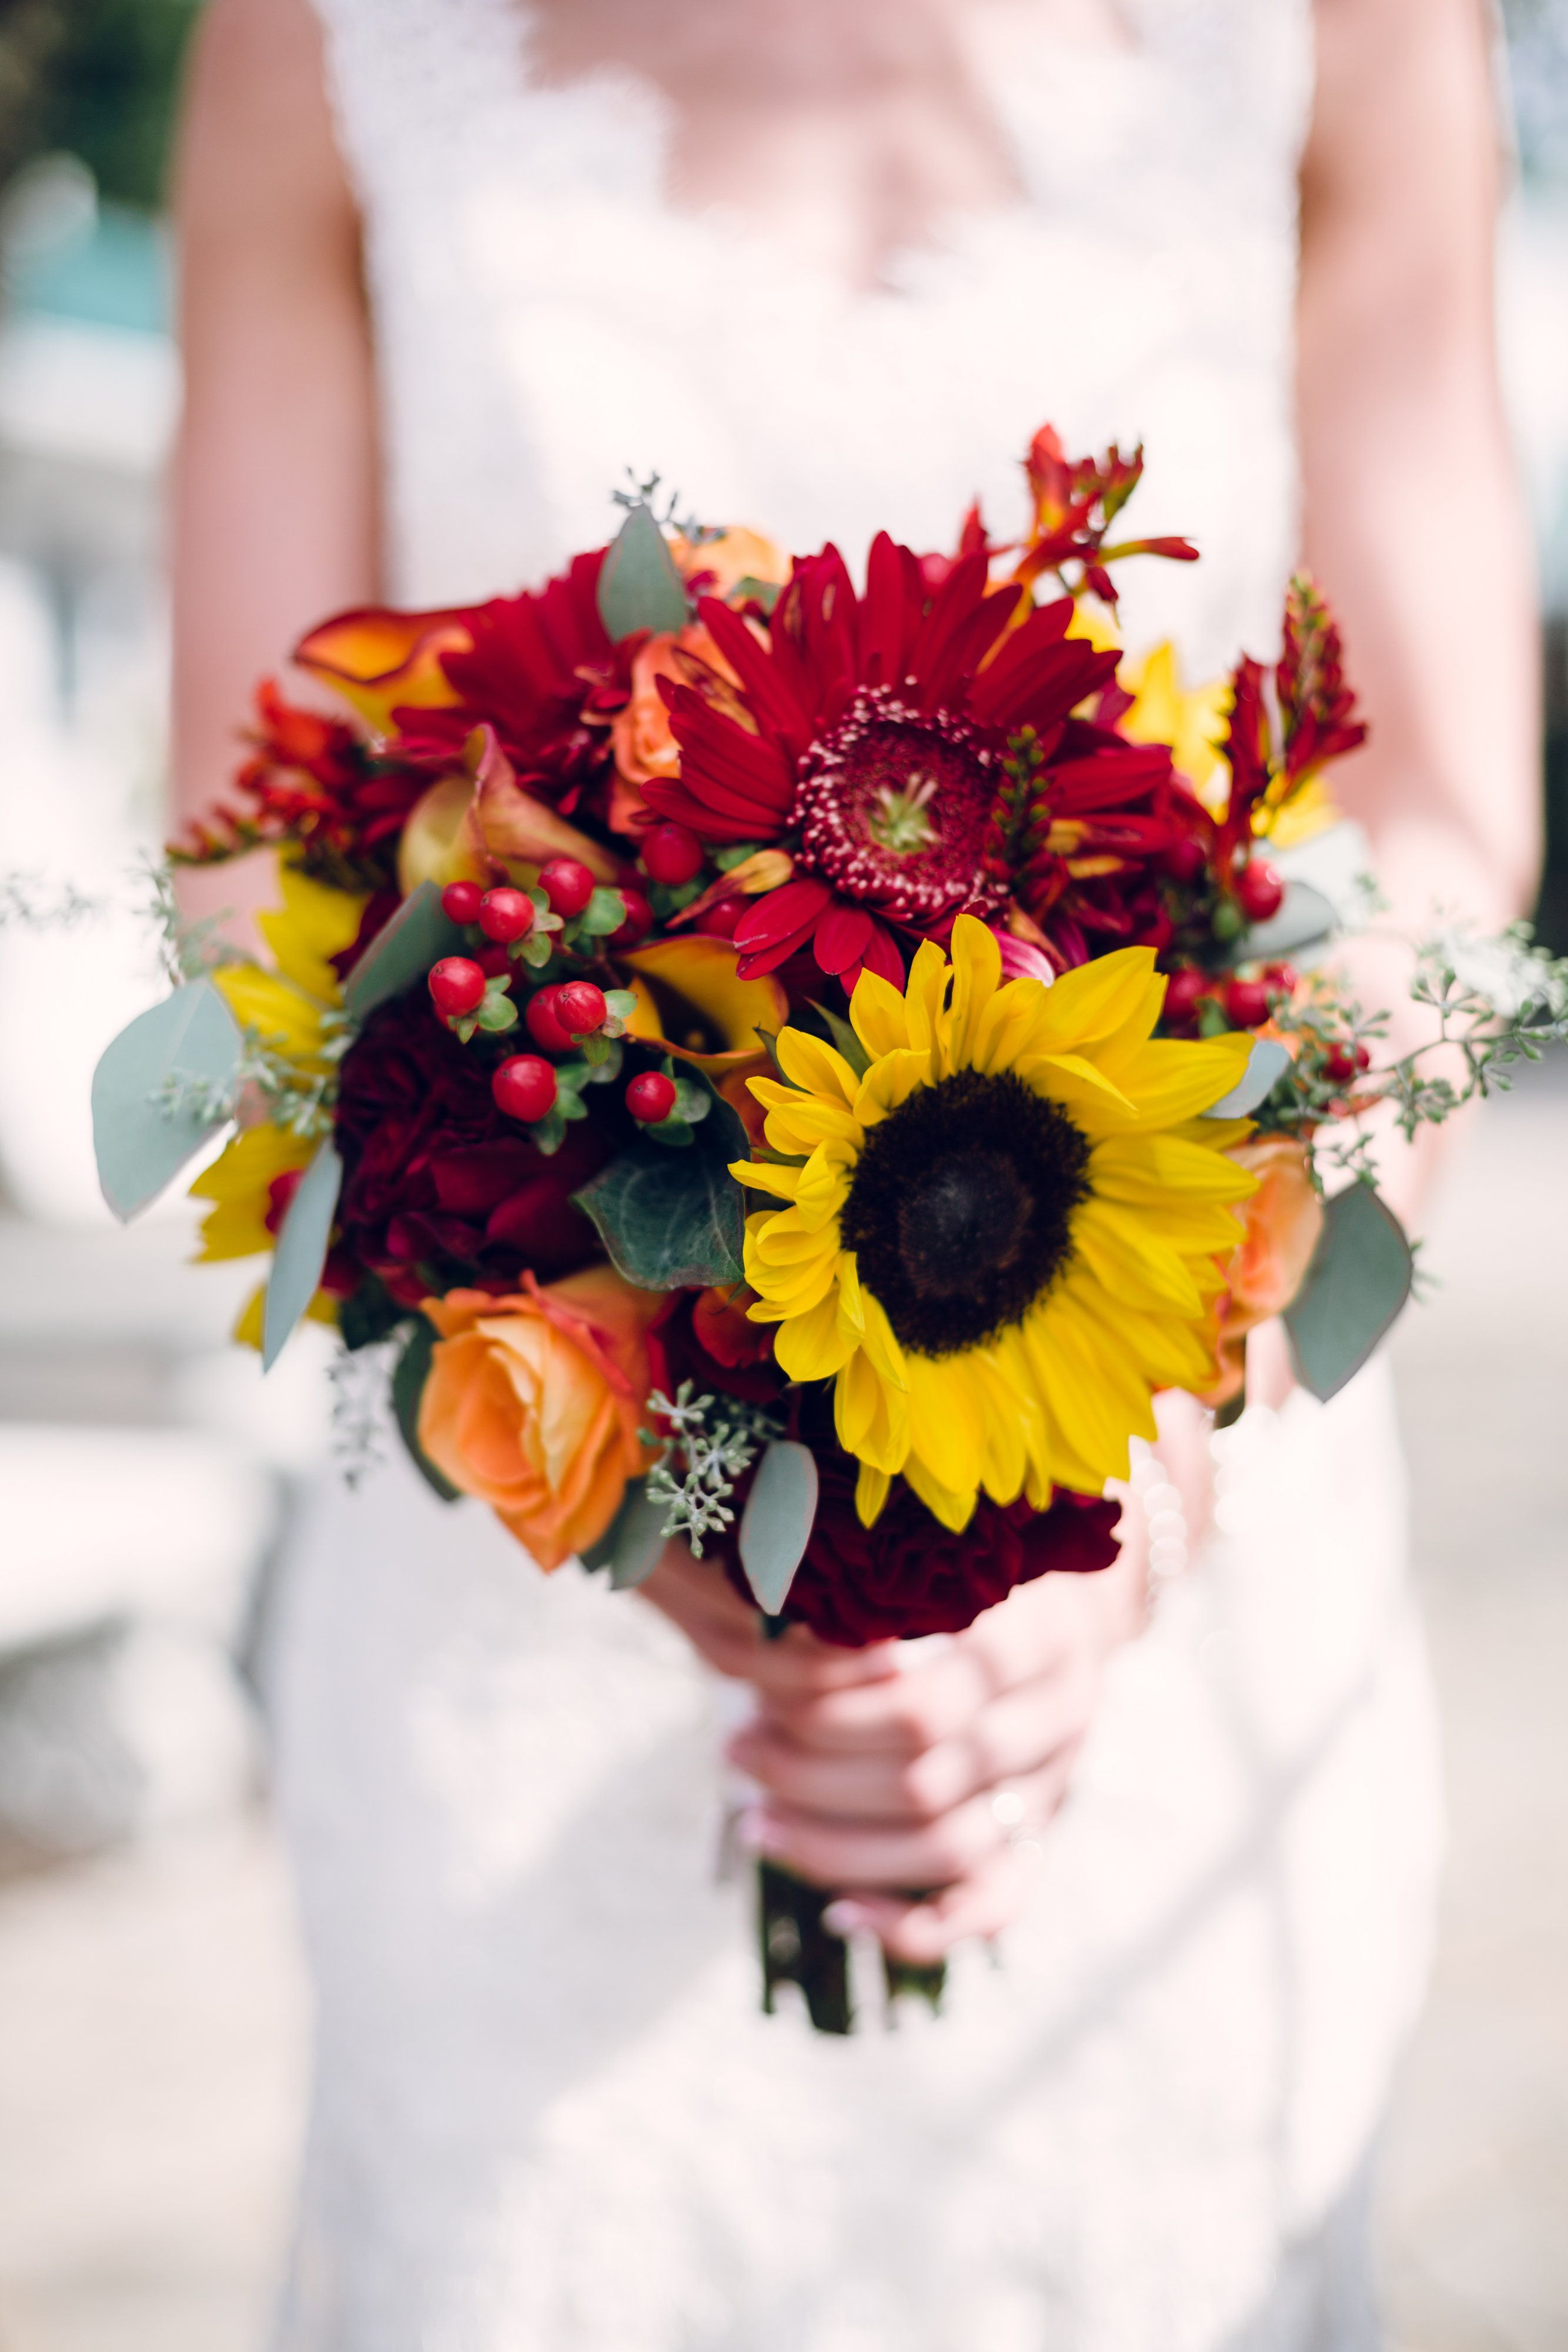 Bridal bouquet with sunflowers and red gerbera daisies